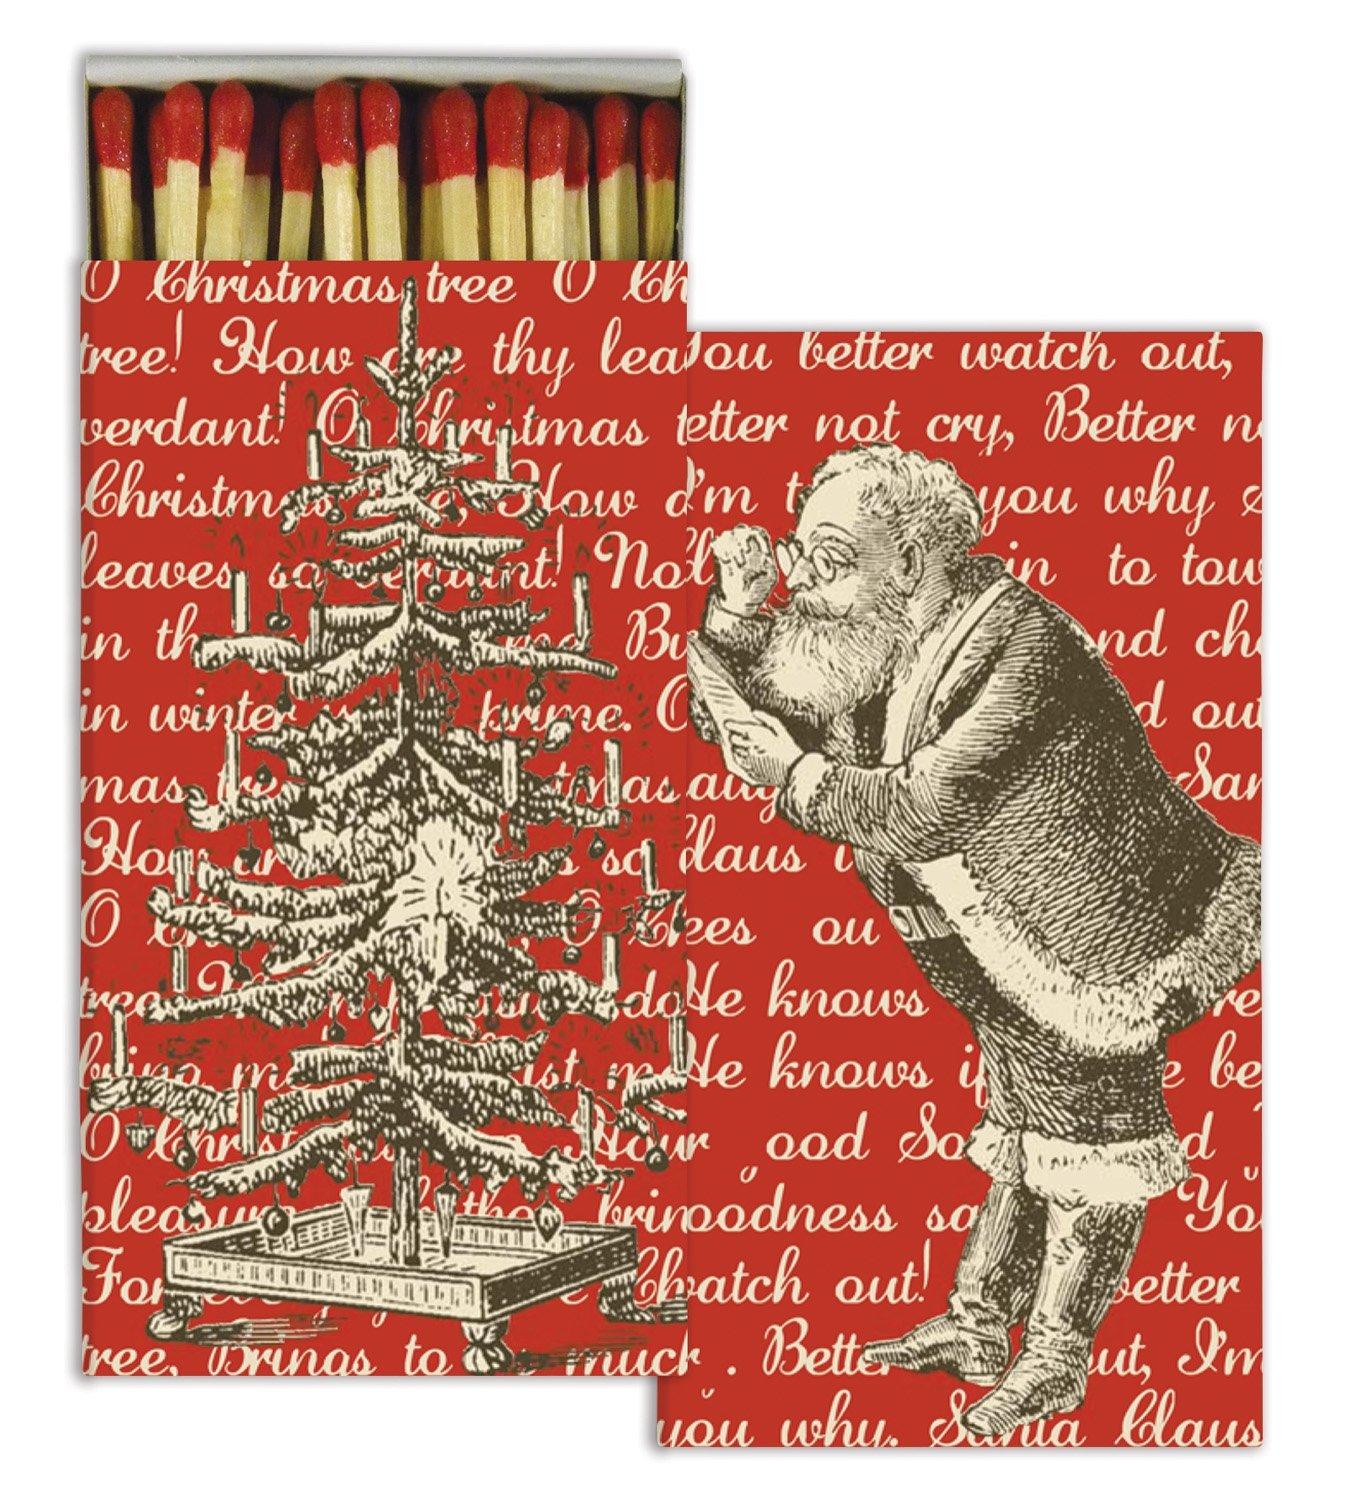 Christmas Carols Decorative Match Boxes with Wooden Matches (Set of 10)